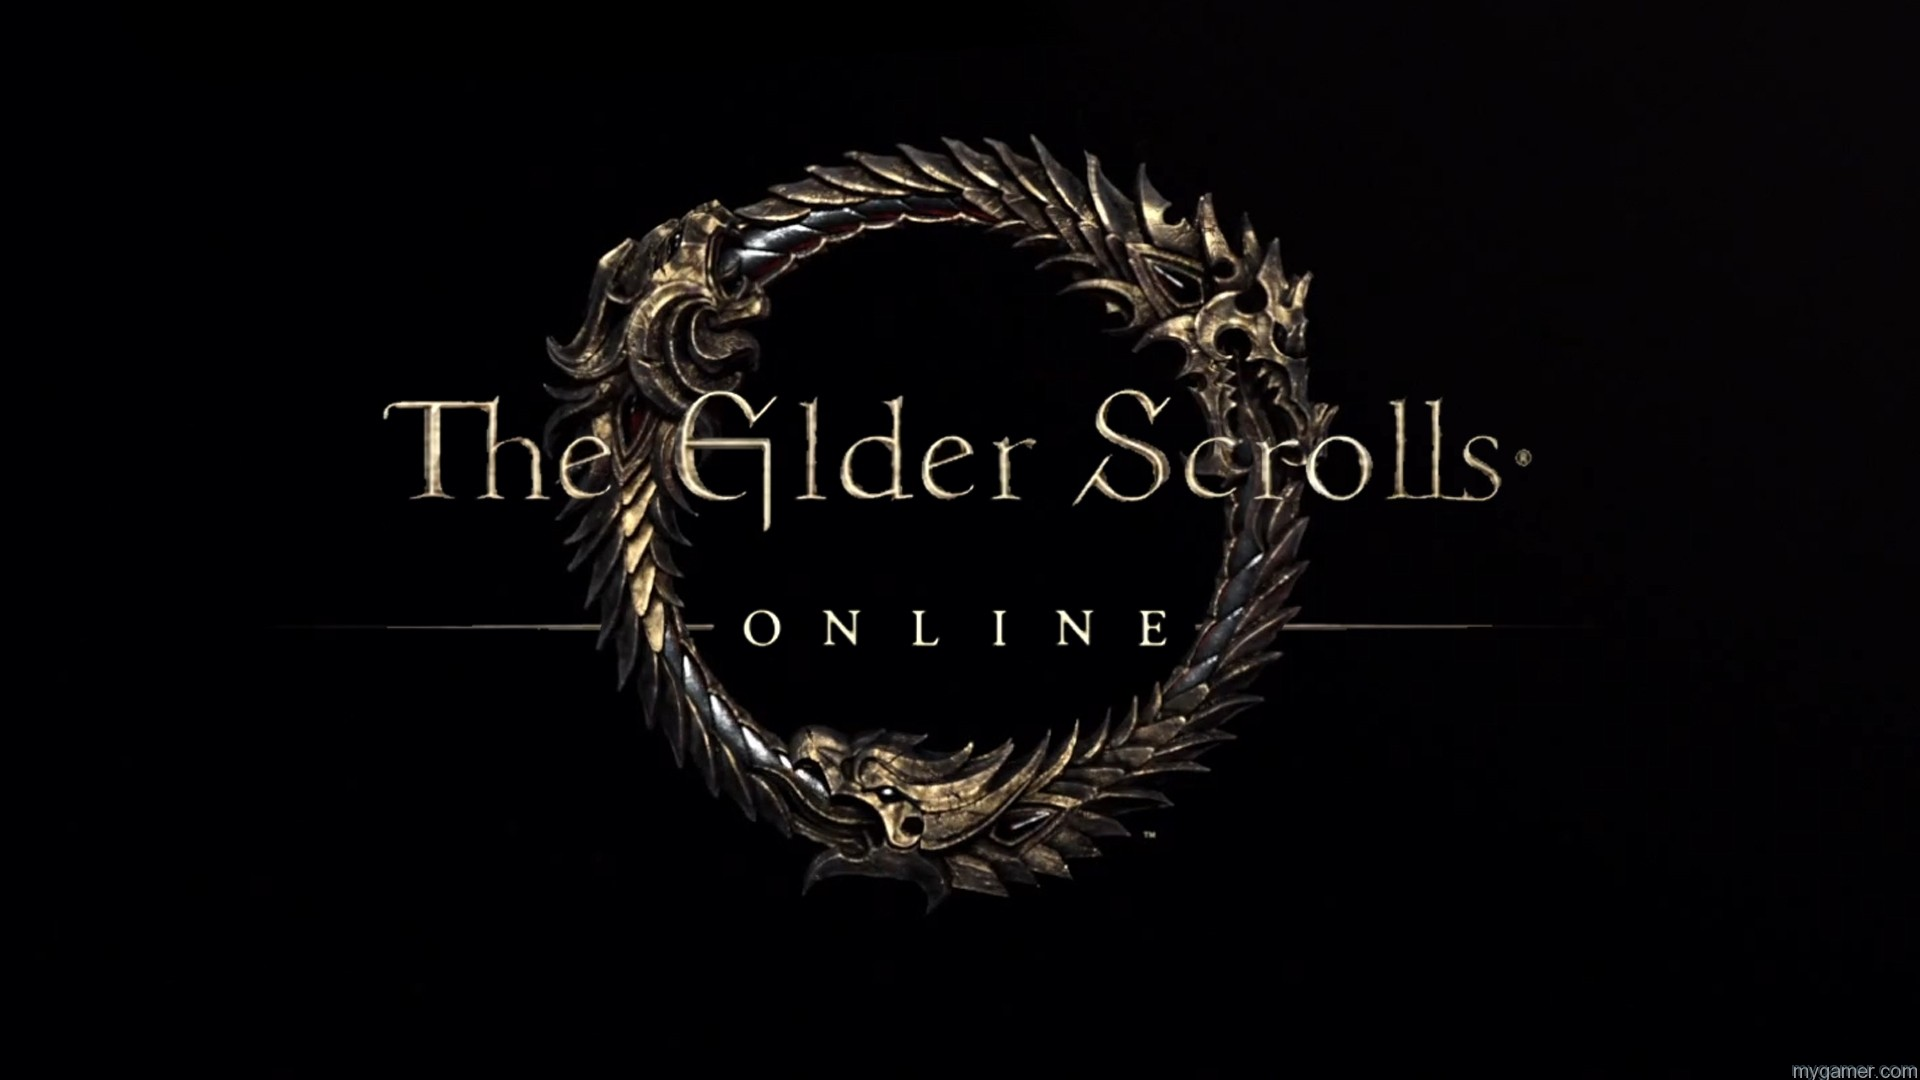 Elder Scrolls Online Hosting Free Play Week Starting April 11, 2017 Elder Scrolls Online Hosting Free Play Week Starting April 11, 2017 Elder Scrolls Online Logo HD Resolution